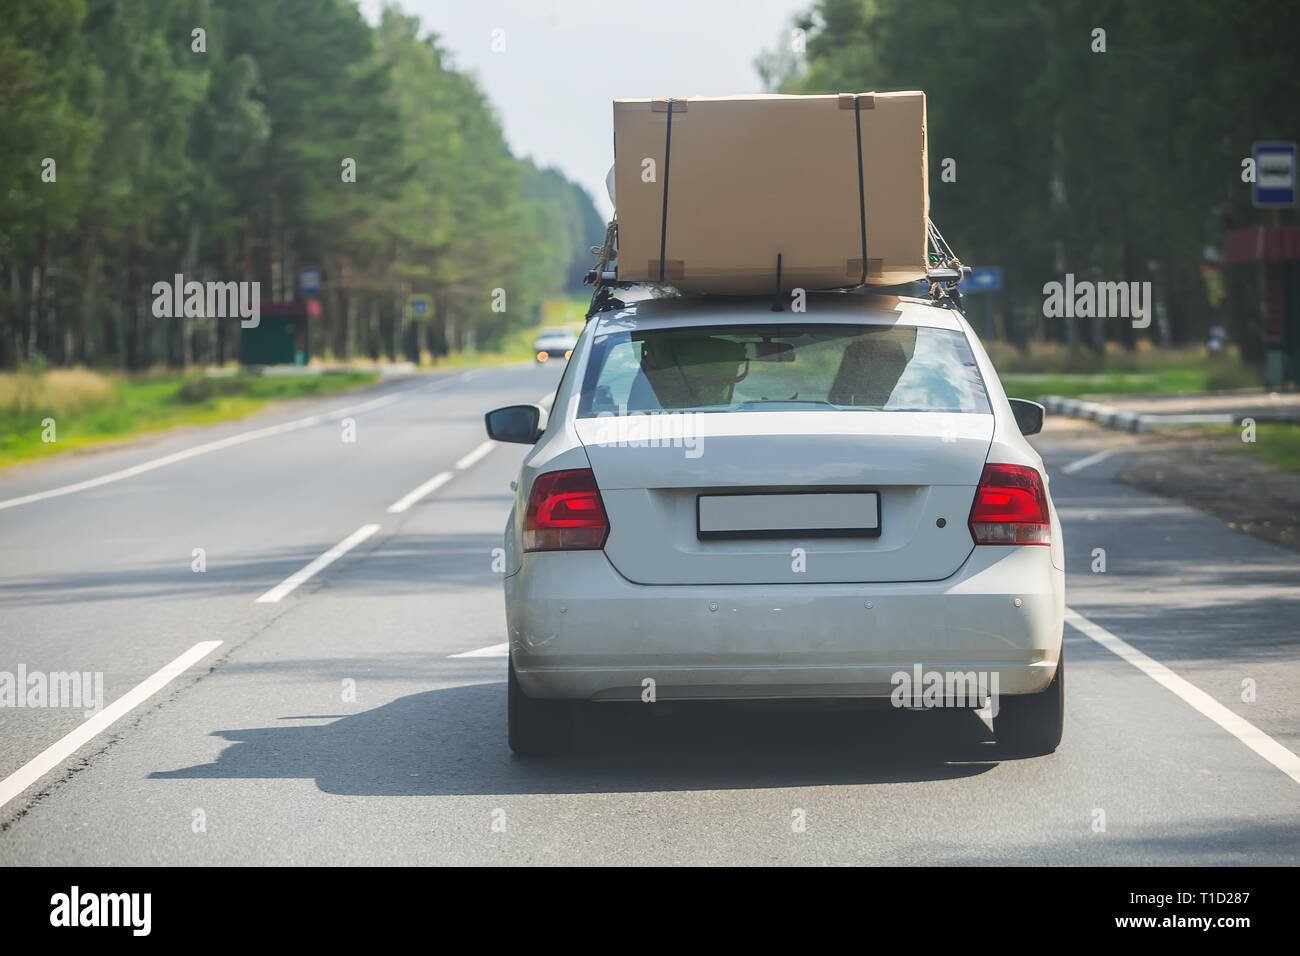 car with large cardboard box on the upper trunk is moving along the highway - Stock Image